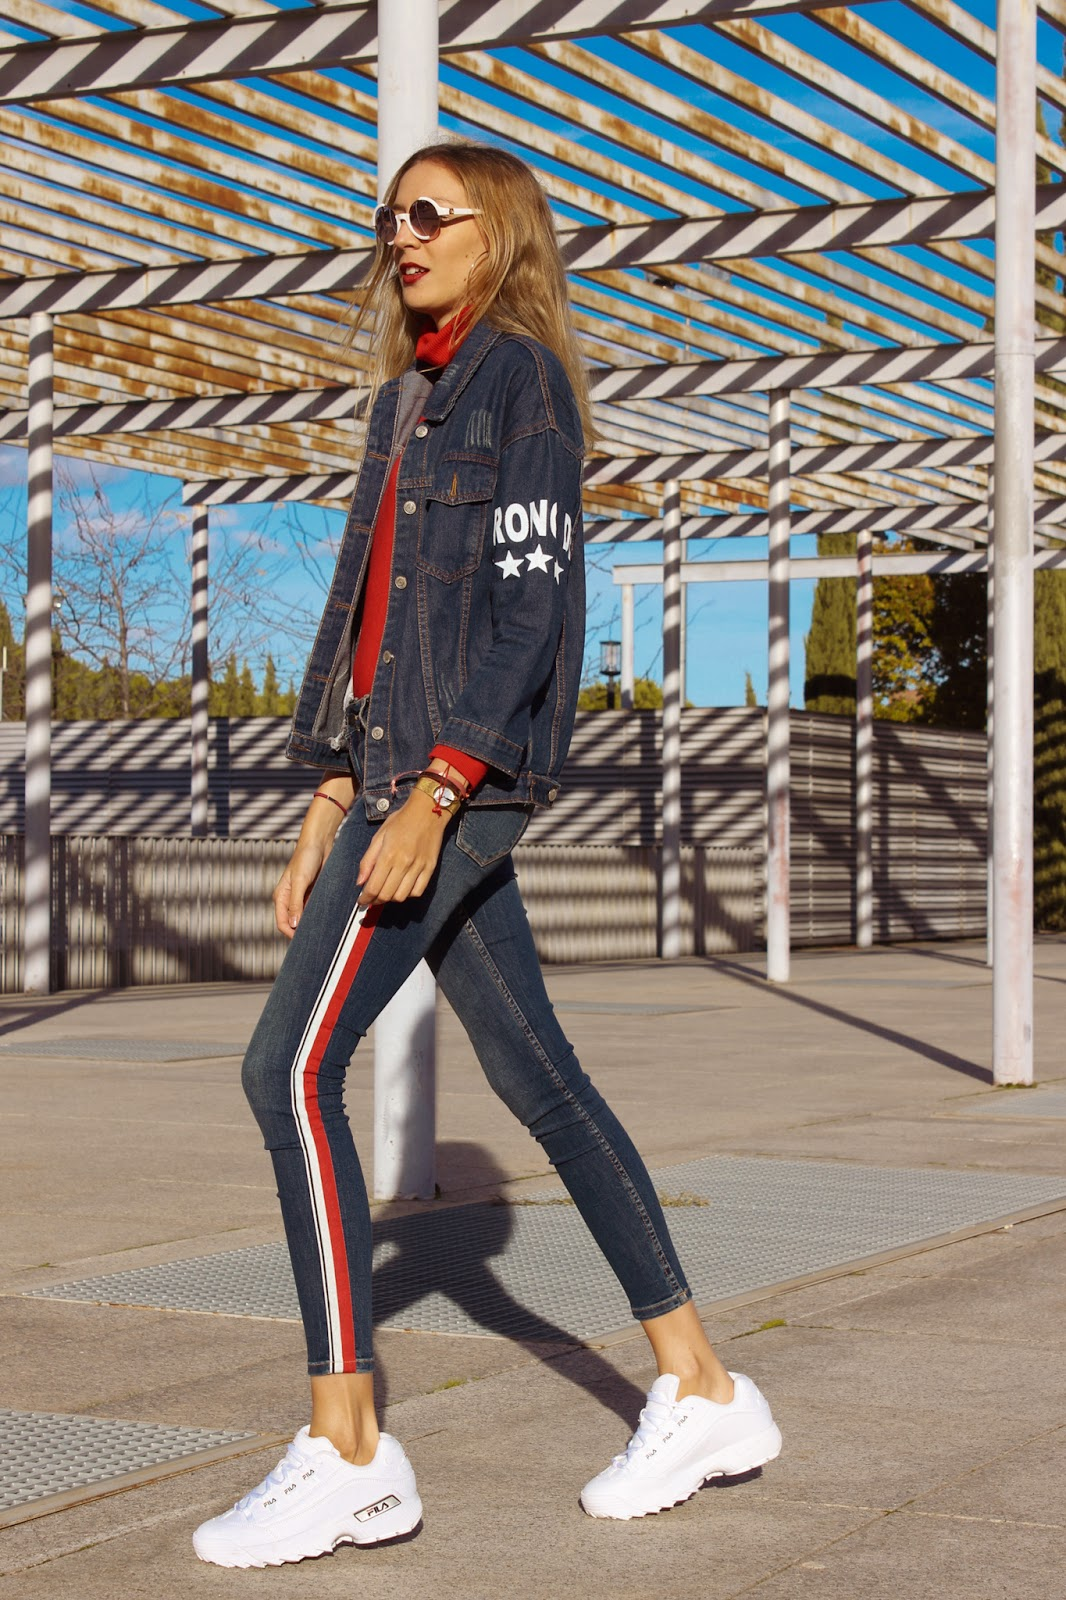 track-pants-street-style-jeans-fila-sneakers-daddy-shoes-turtle-neck-denim-total-look